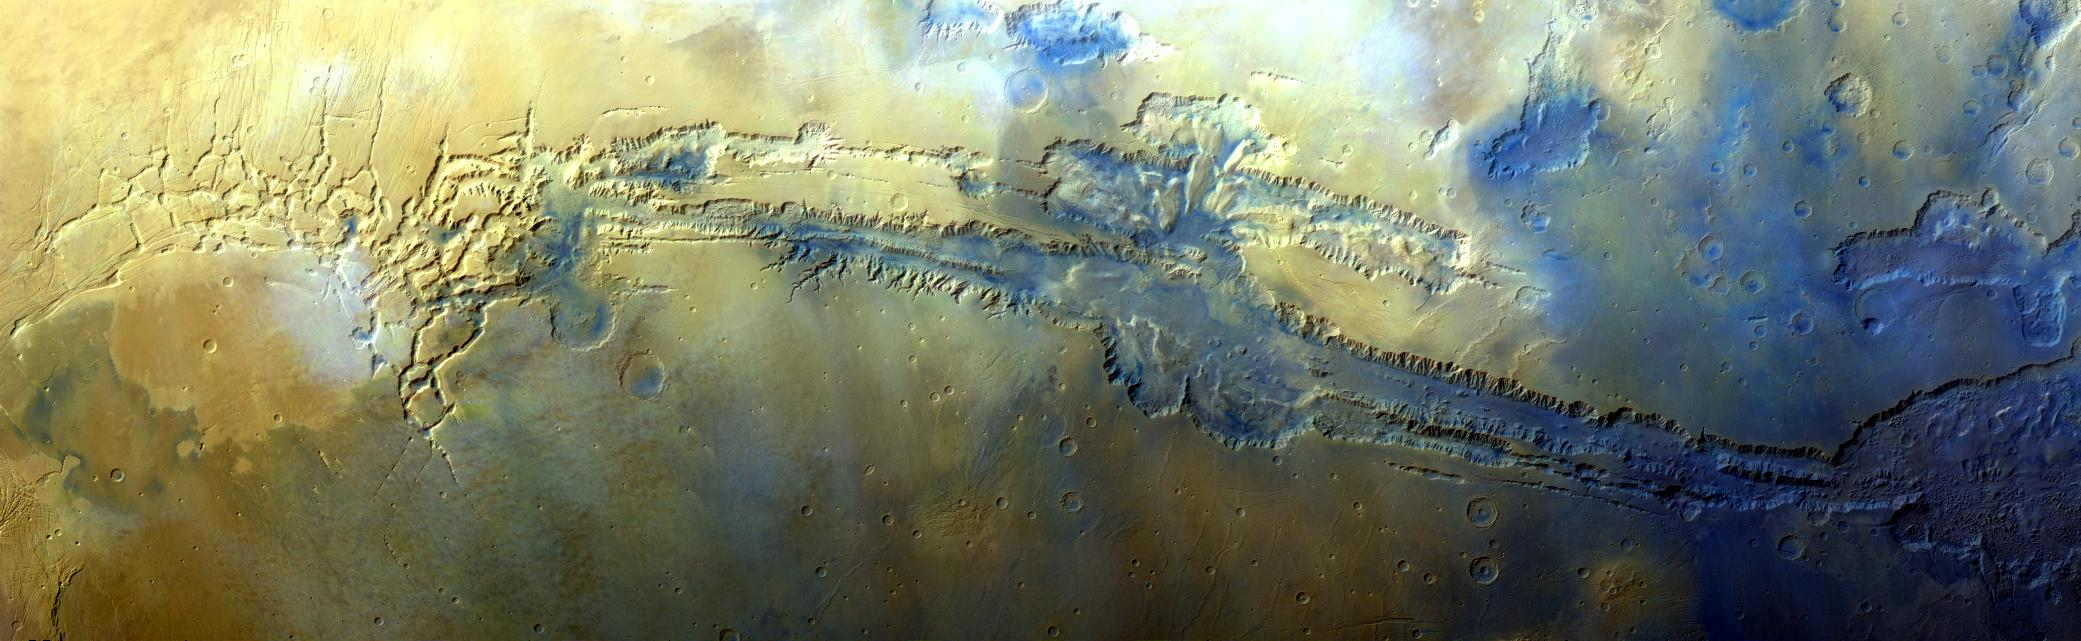 A MARCI mosaic of Valles Marineris that I made.